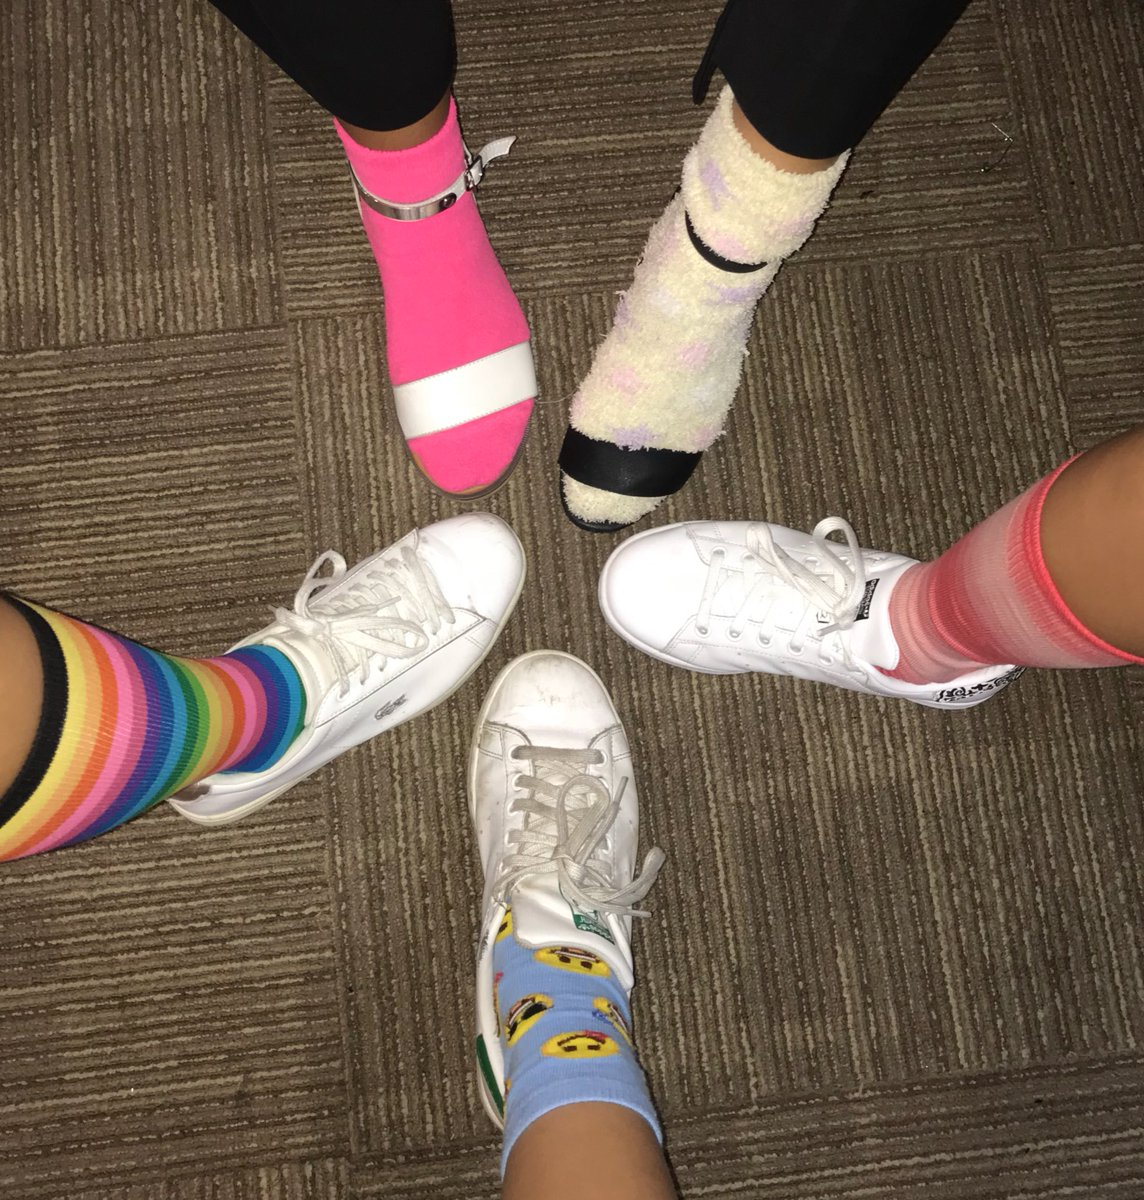 It's ODD SOCK DAY today! We are all DIFFERENT and all EQUAL!!!!!! #AntiBullyingWeek2017 #TakeAStand #LendAHand #GISLearning<br>http://pic.twitter.com/FqrYibDCmq